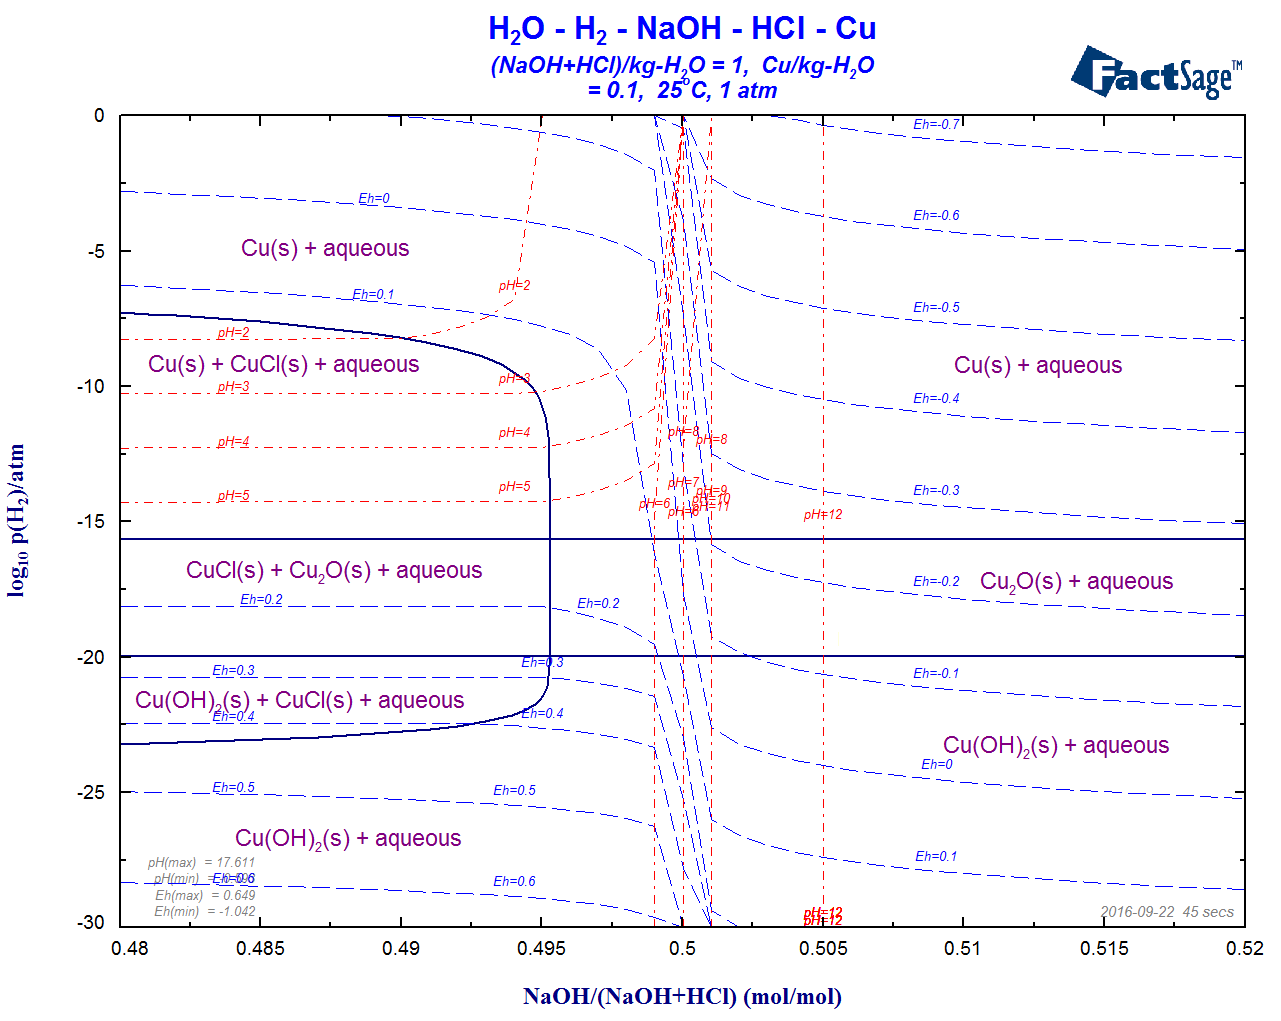 hight resolution of aqueous phase diagrams of the h2o cu naoh hcl h2 log10 p h2 versus molar ratio naoh naoh hcl at m cu 0 1